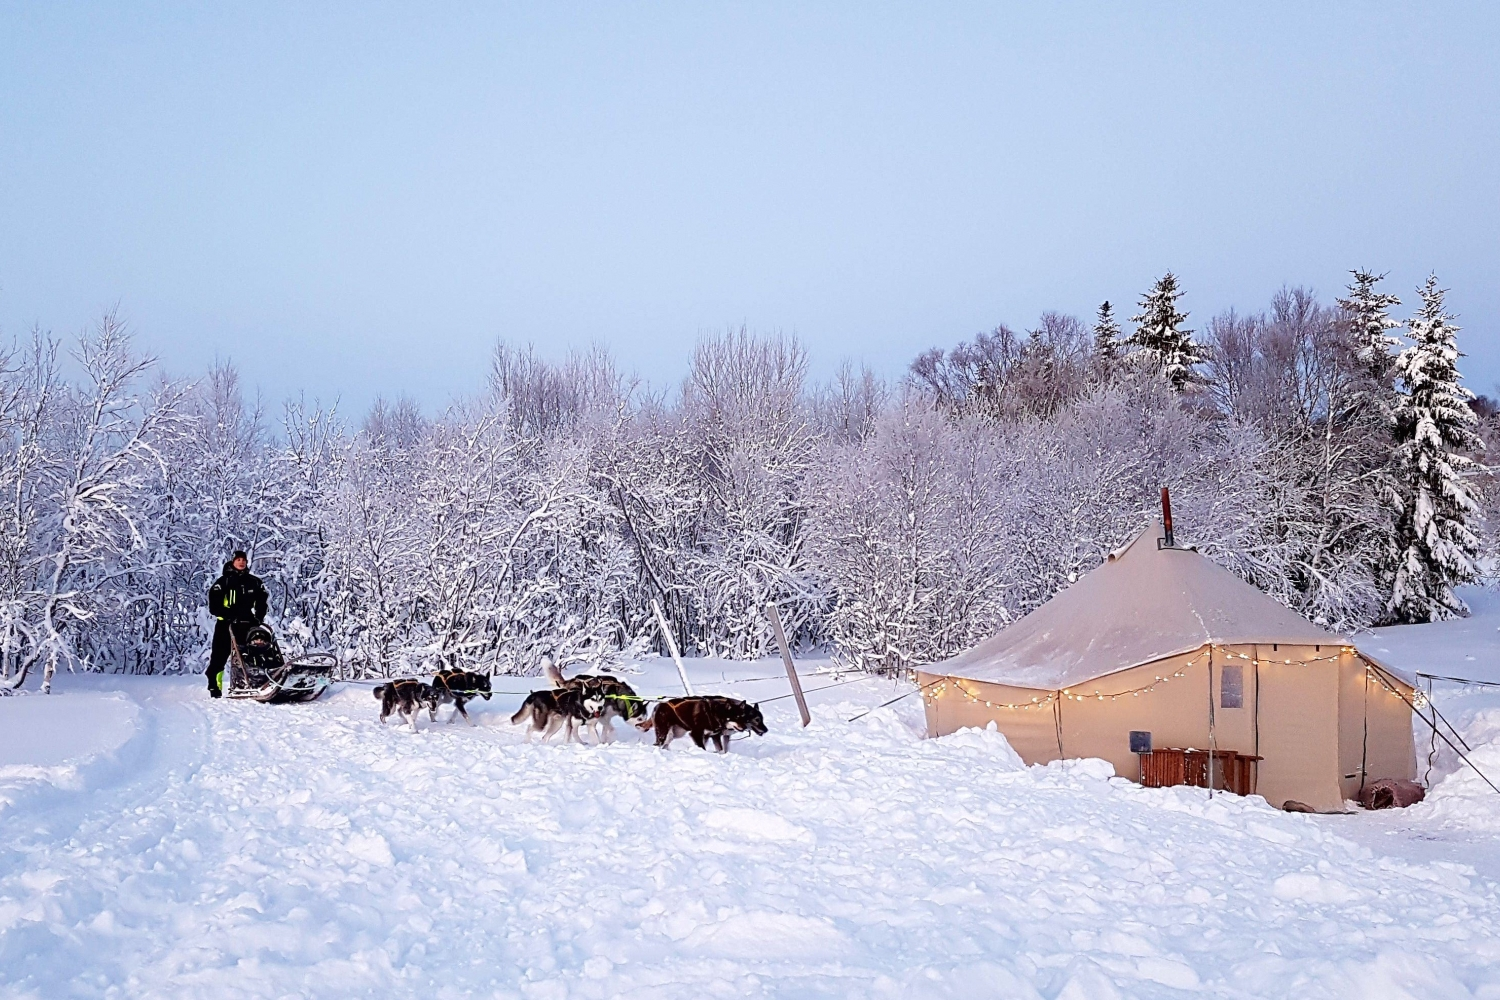 Dog sled and tent in a snowy landscape